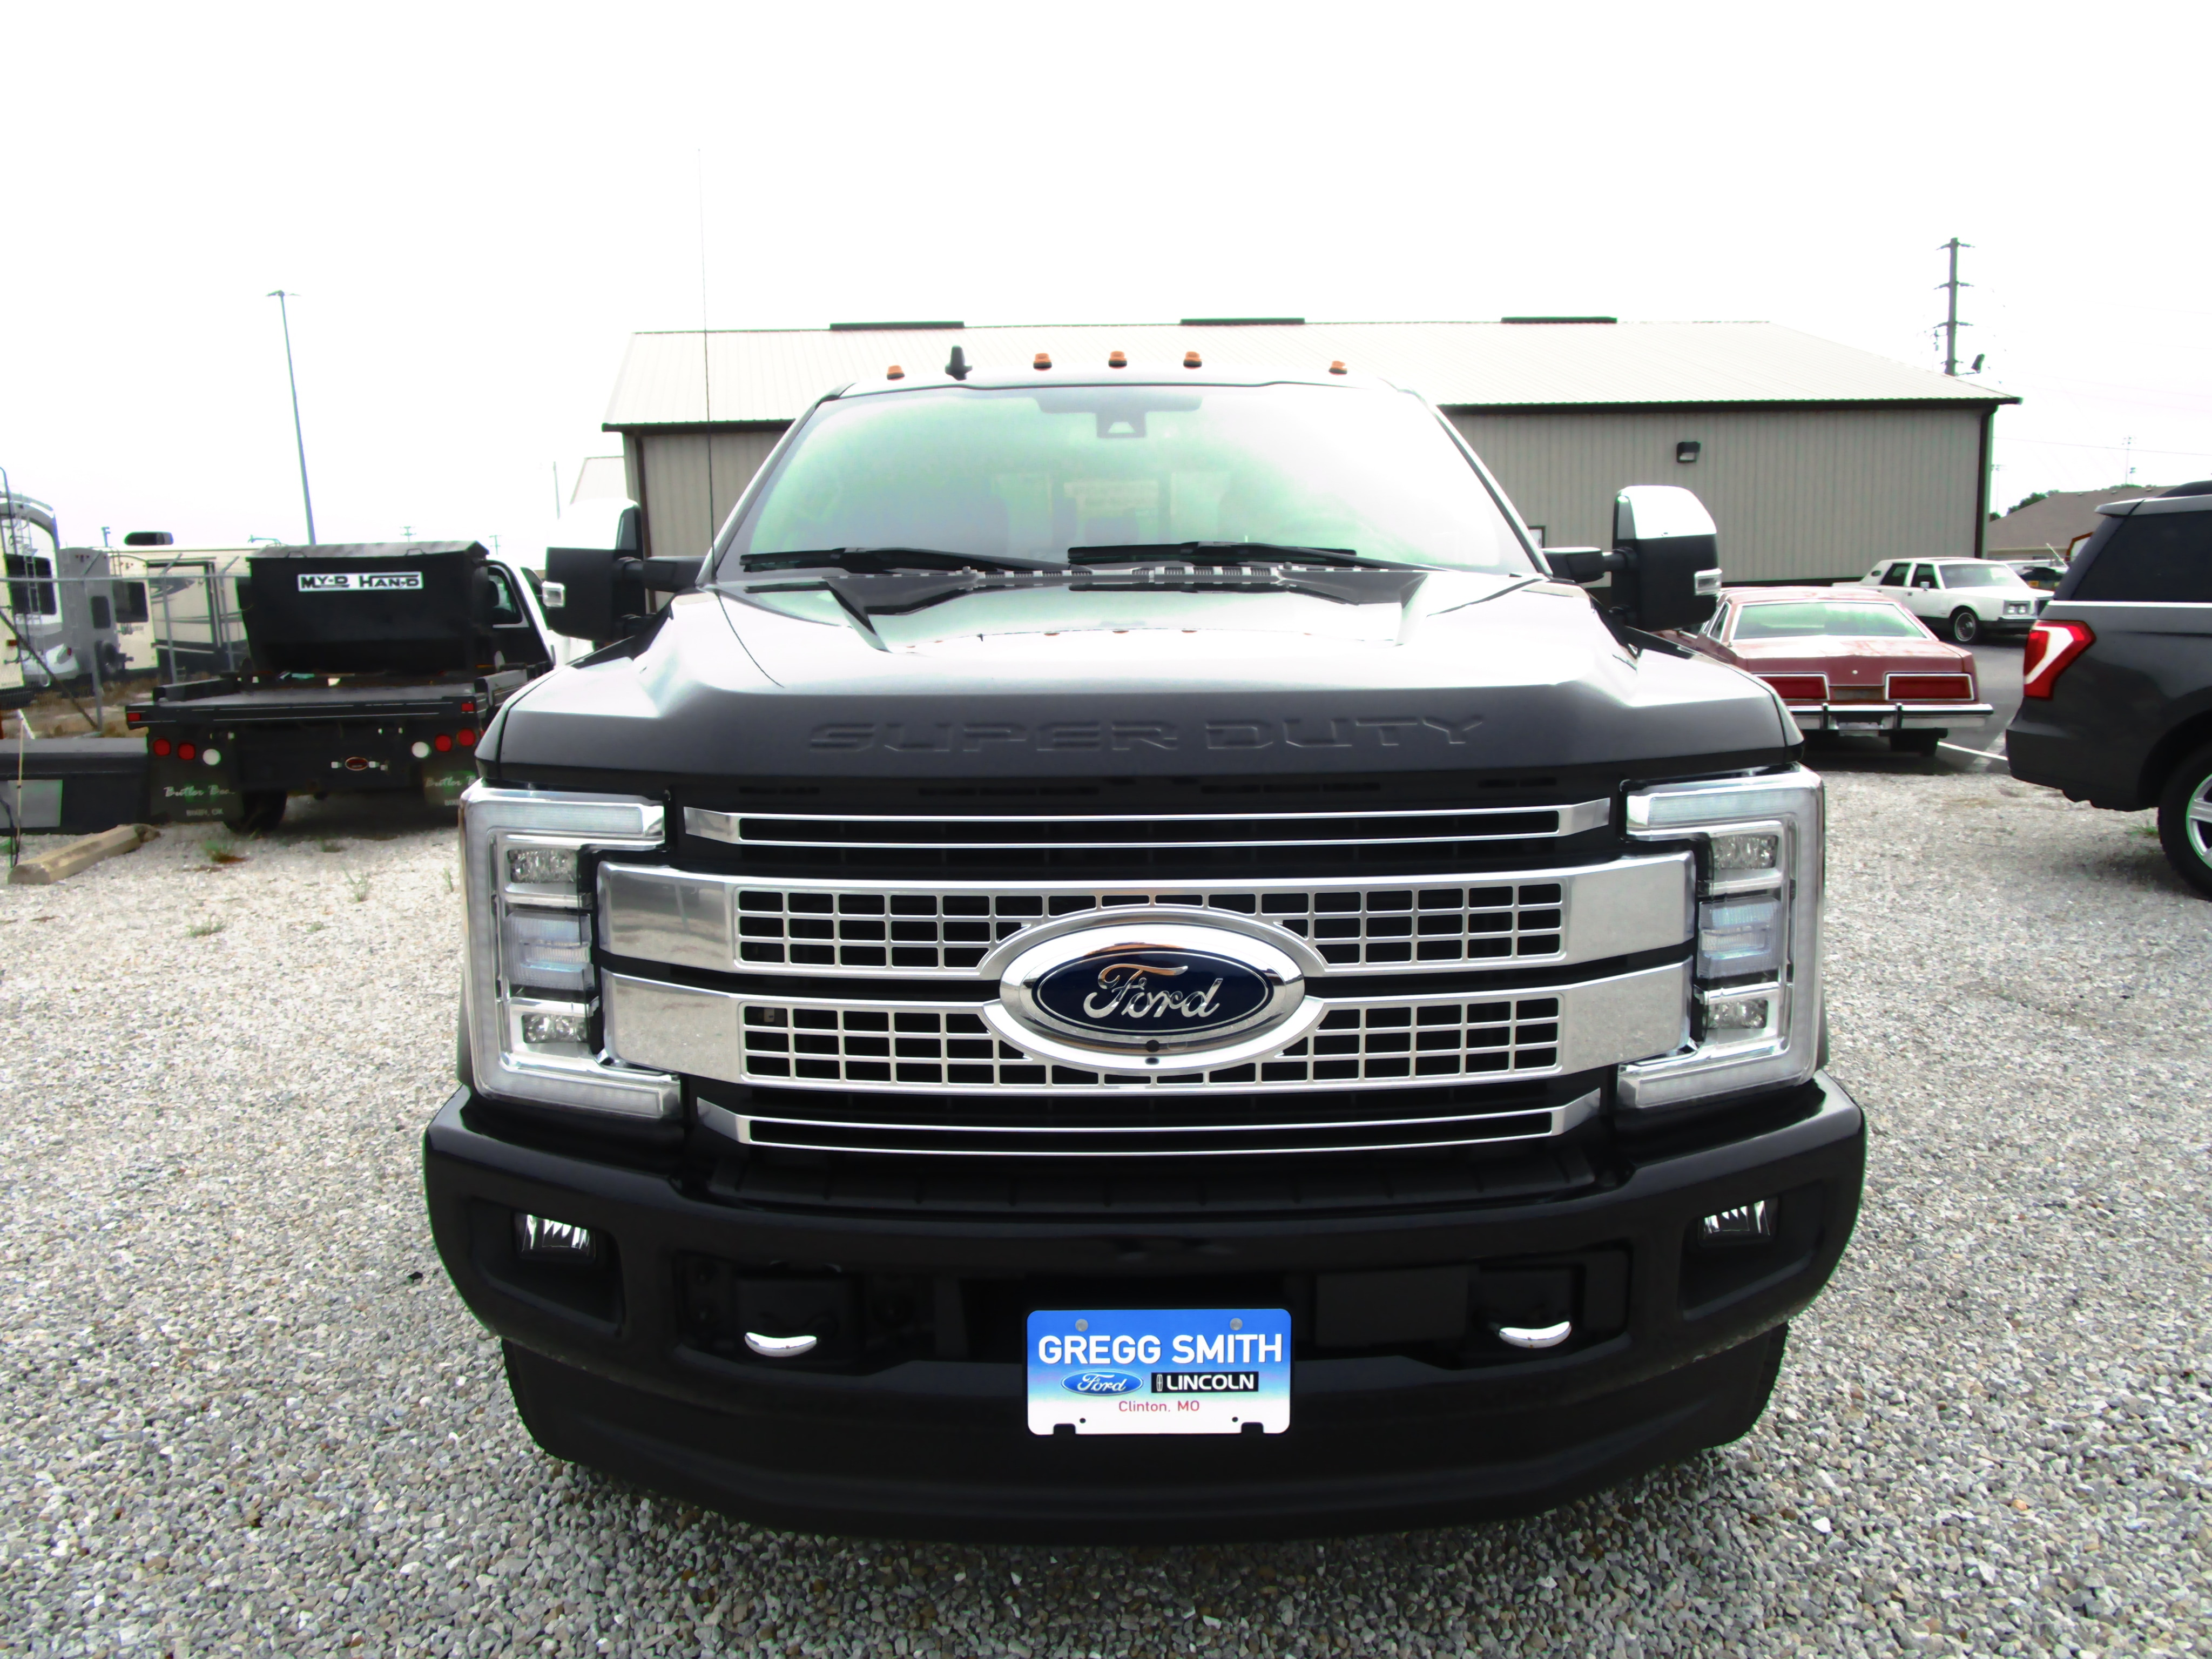 New 2019 Ford Superduty For Sale at Gregg Smith Ford Lincoln